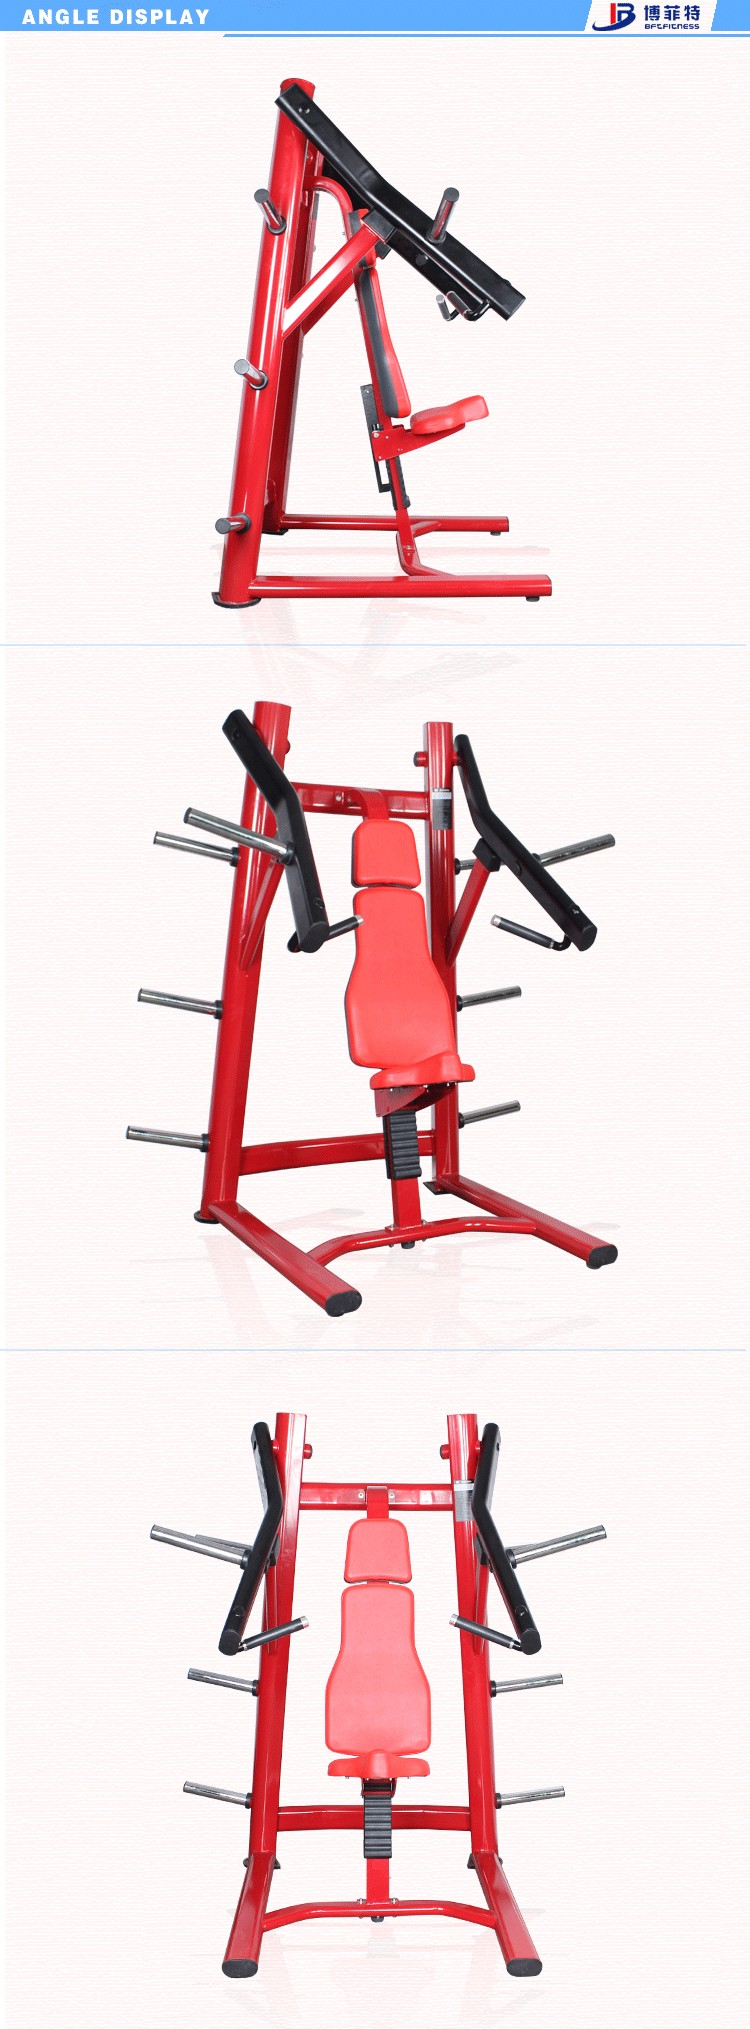 Bft5011 Seated Incline Chest Press Bft Fitness Equipment